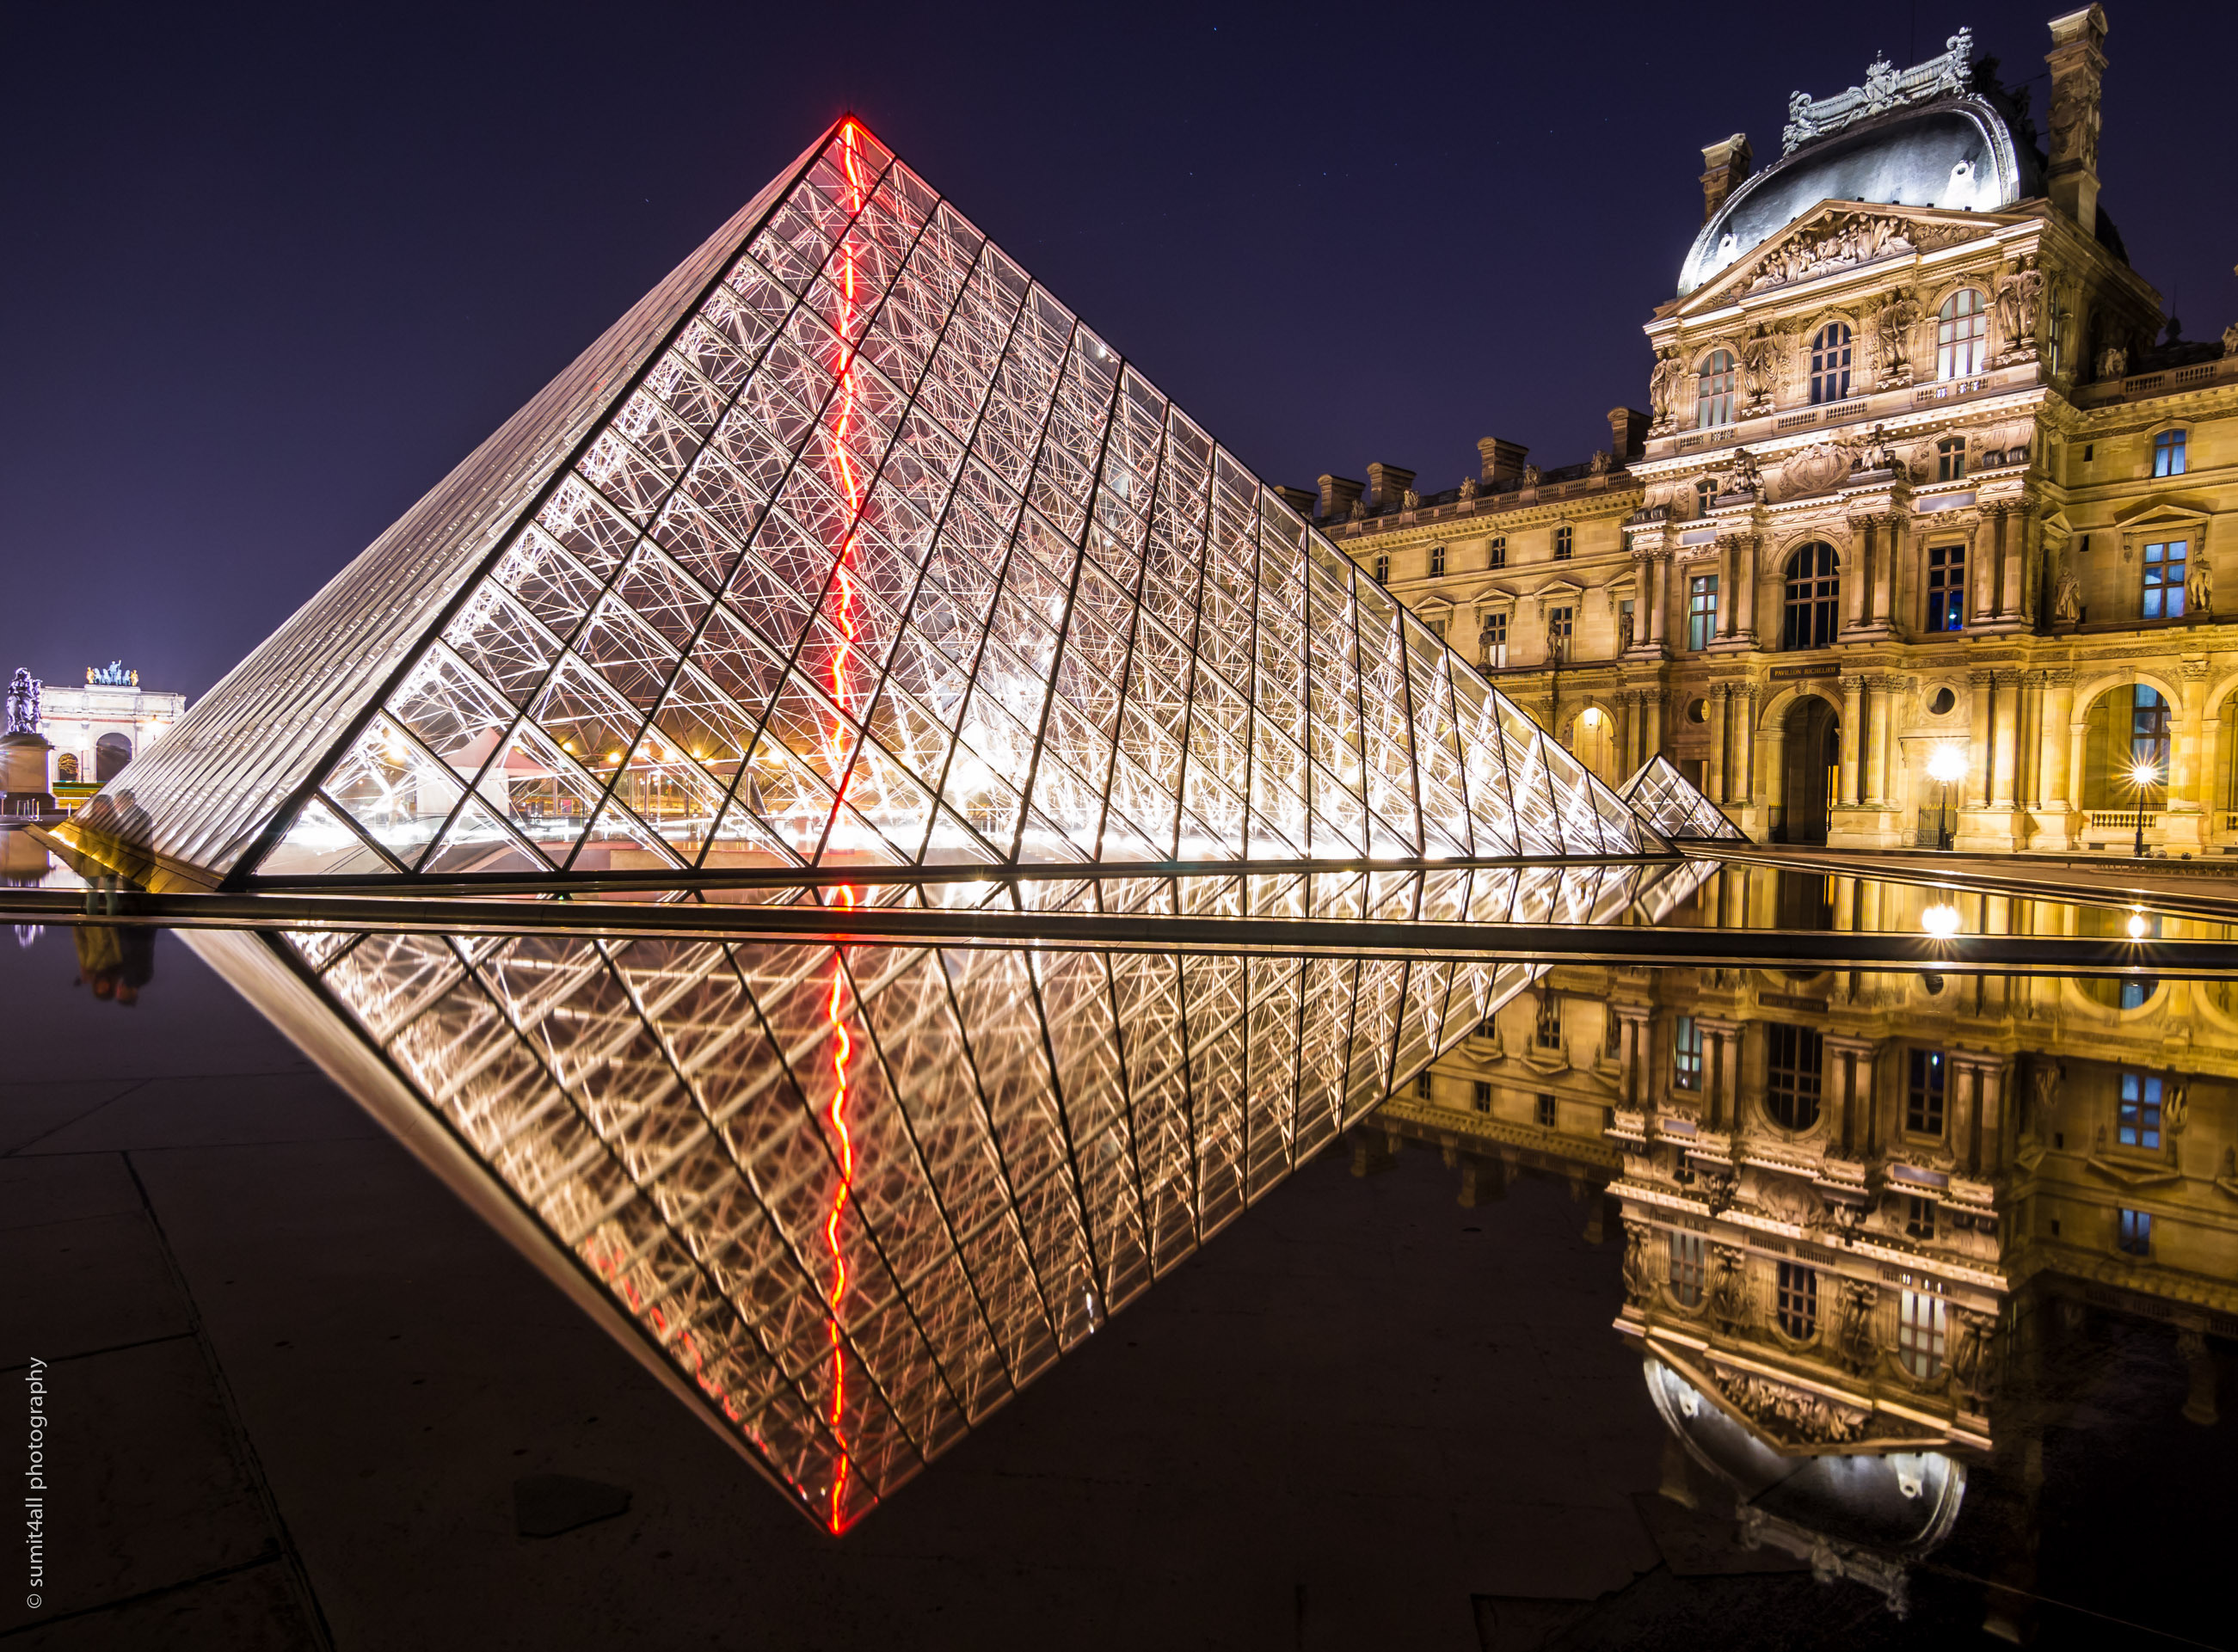 The Beauty and Vastness of the Louvre